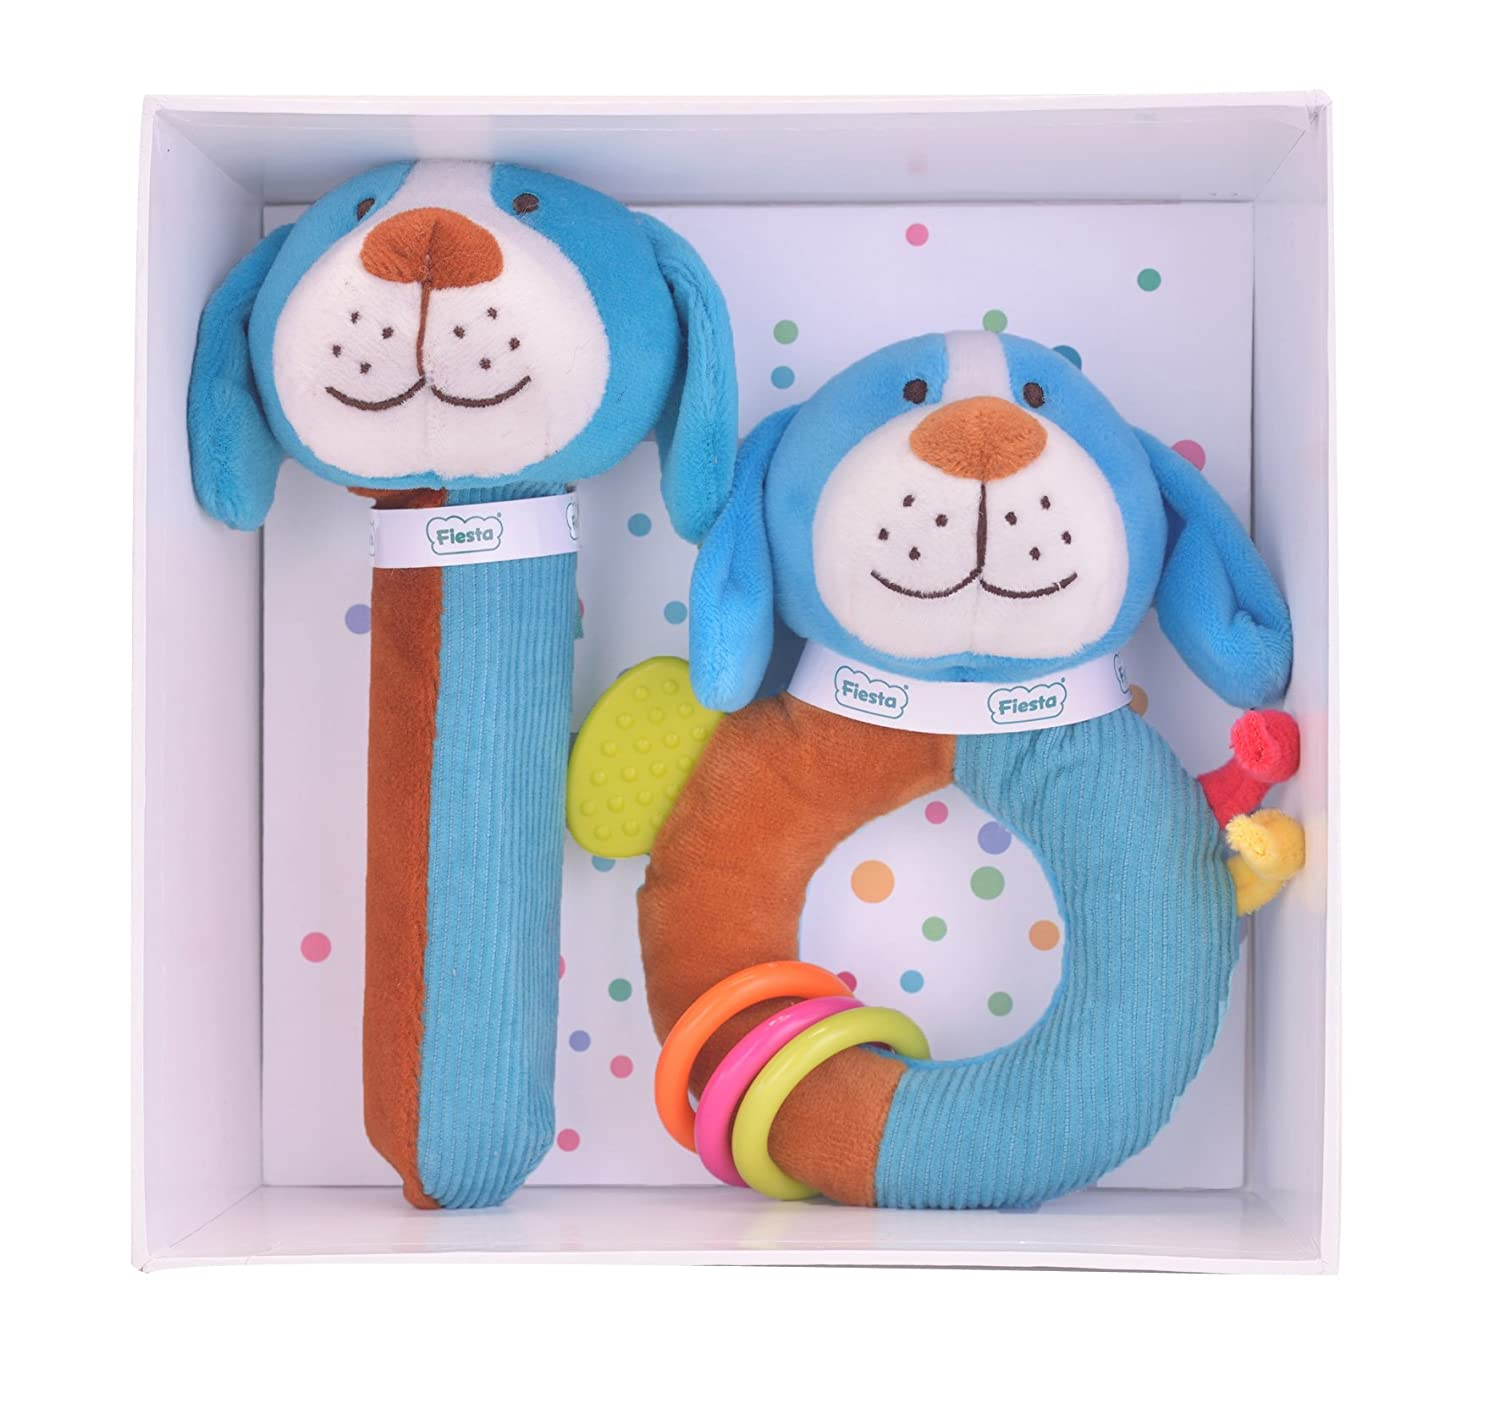 【クーポン対象外】 Dog Baby Gift Baby Set - - Squeakaboo And Ringaling Toys Dog B01IN4WBBA, 岐阜県:f391c41f --- clubavenue.eu